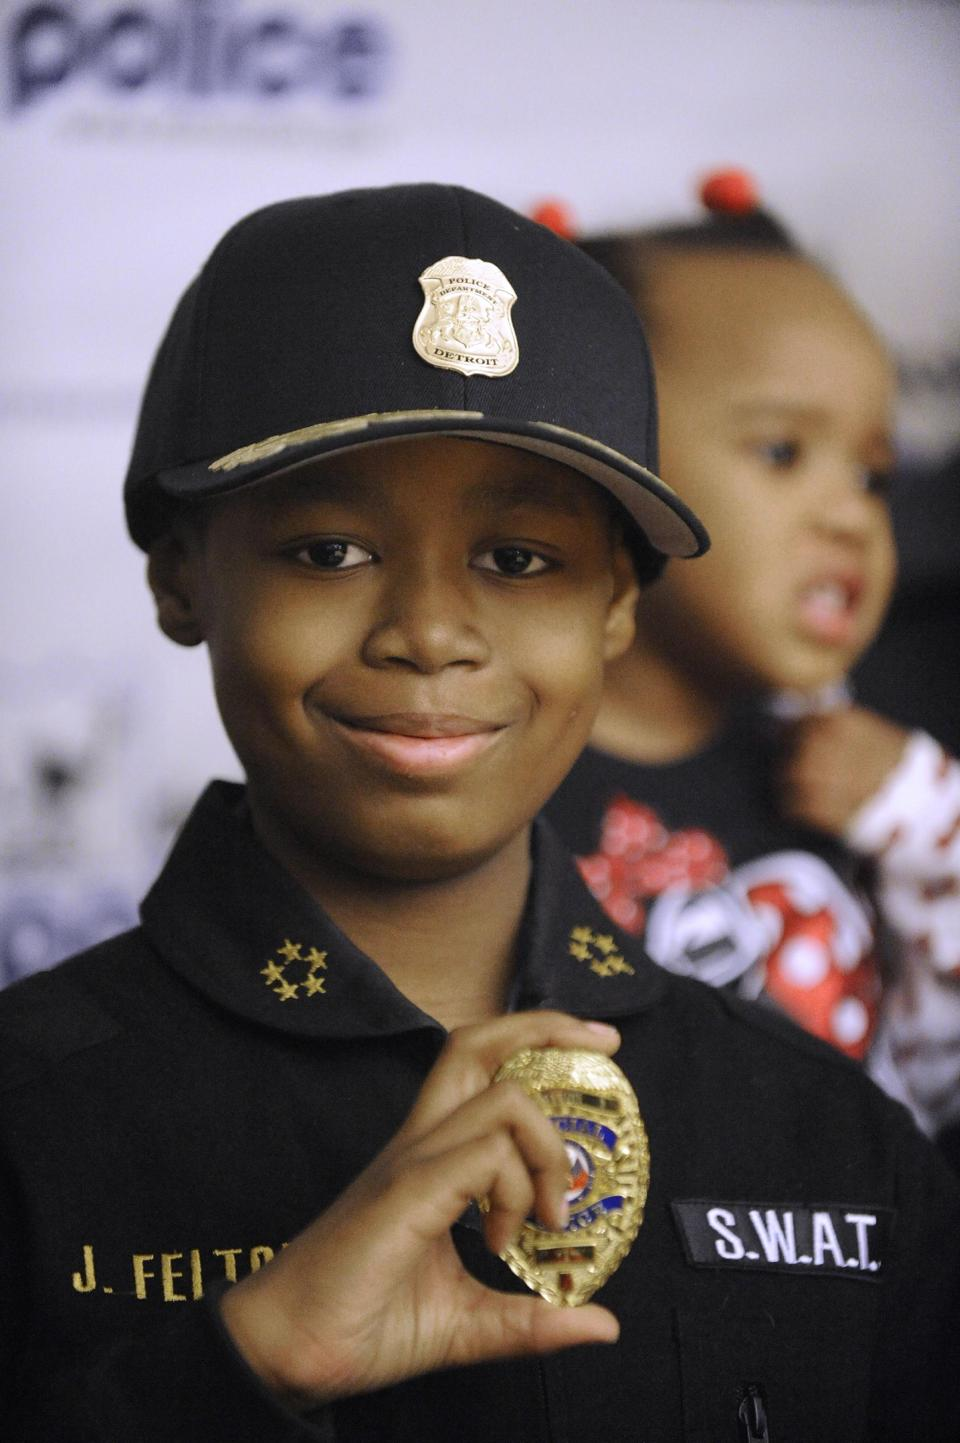 Jayvon Felton always wanted to be a police officer in his hometown, Detroit.